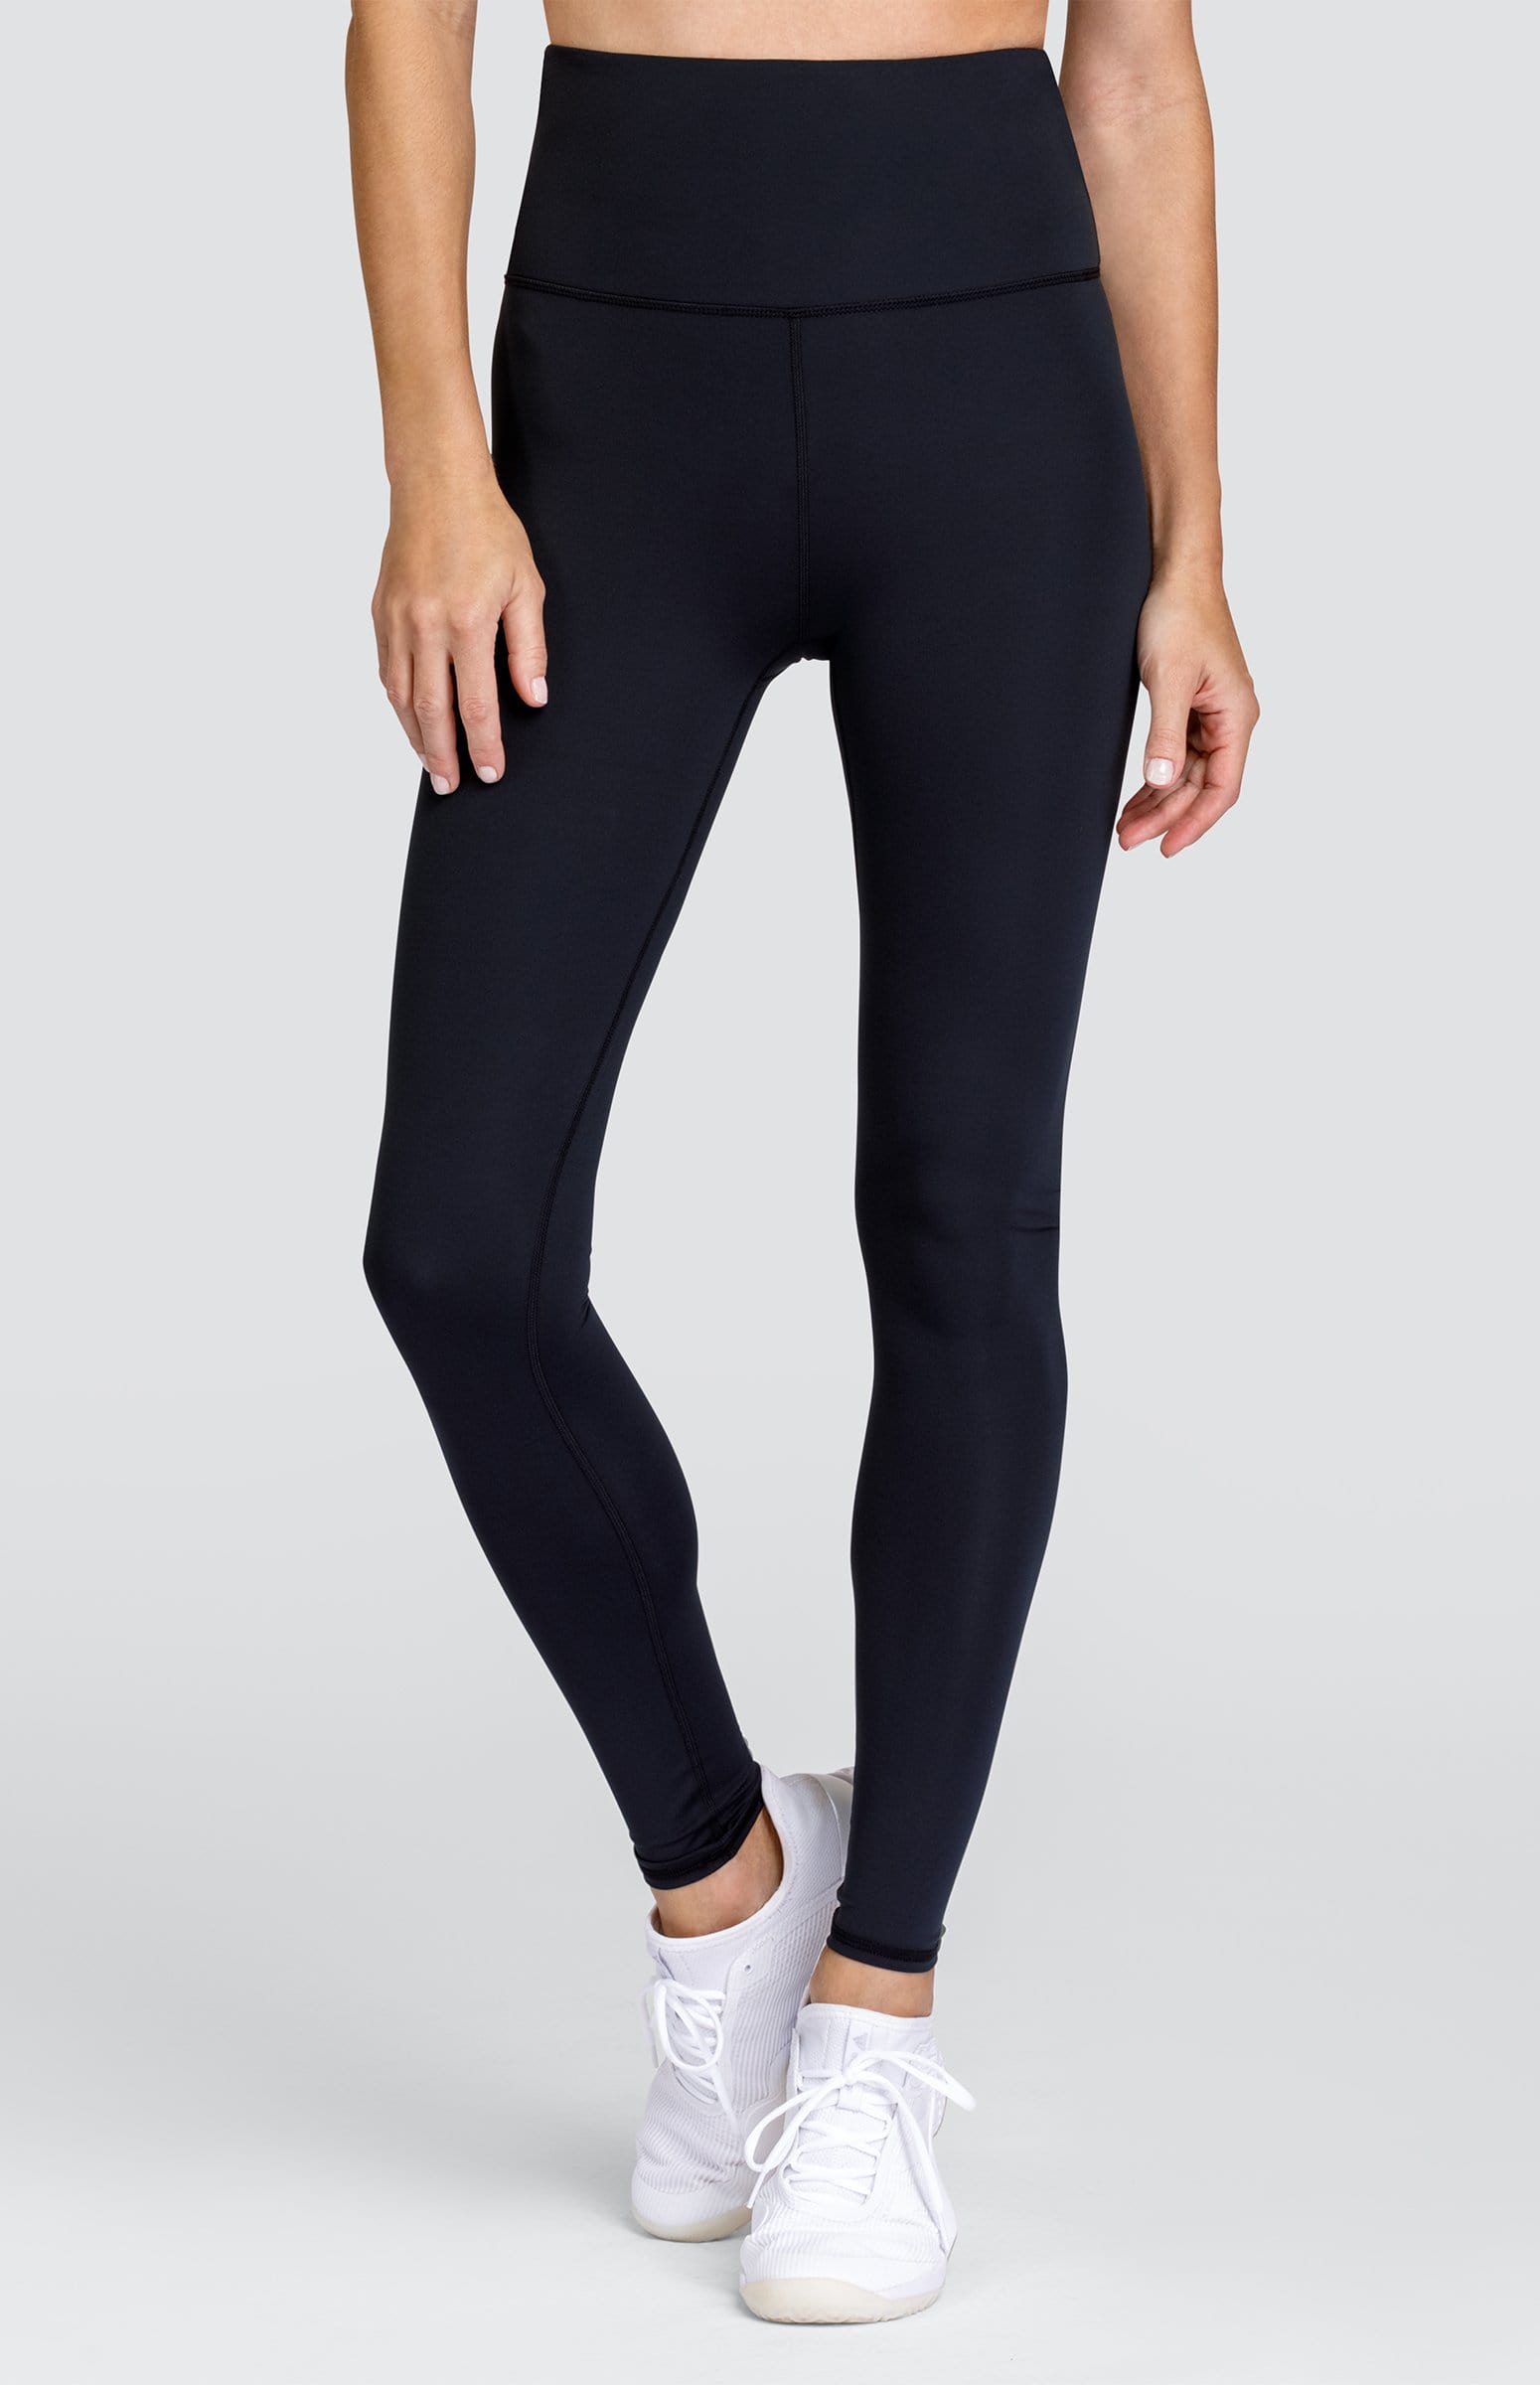 Adelie Leggings - Onyx